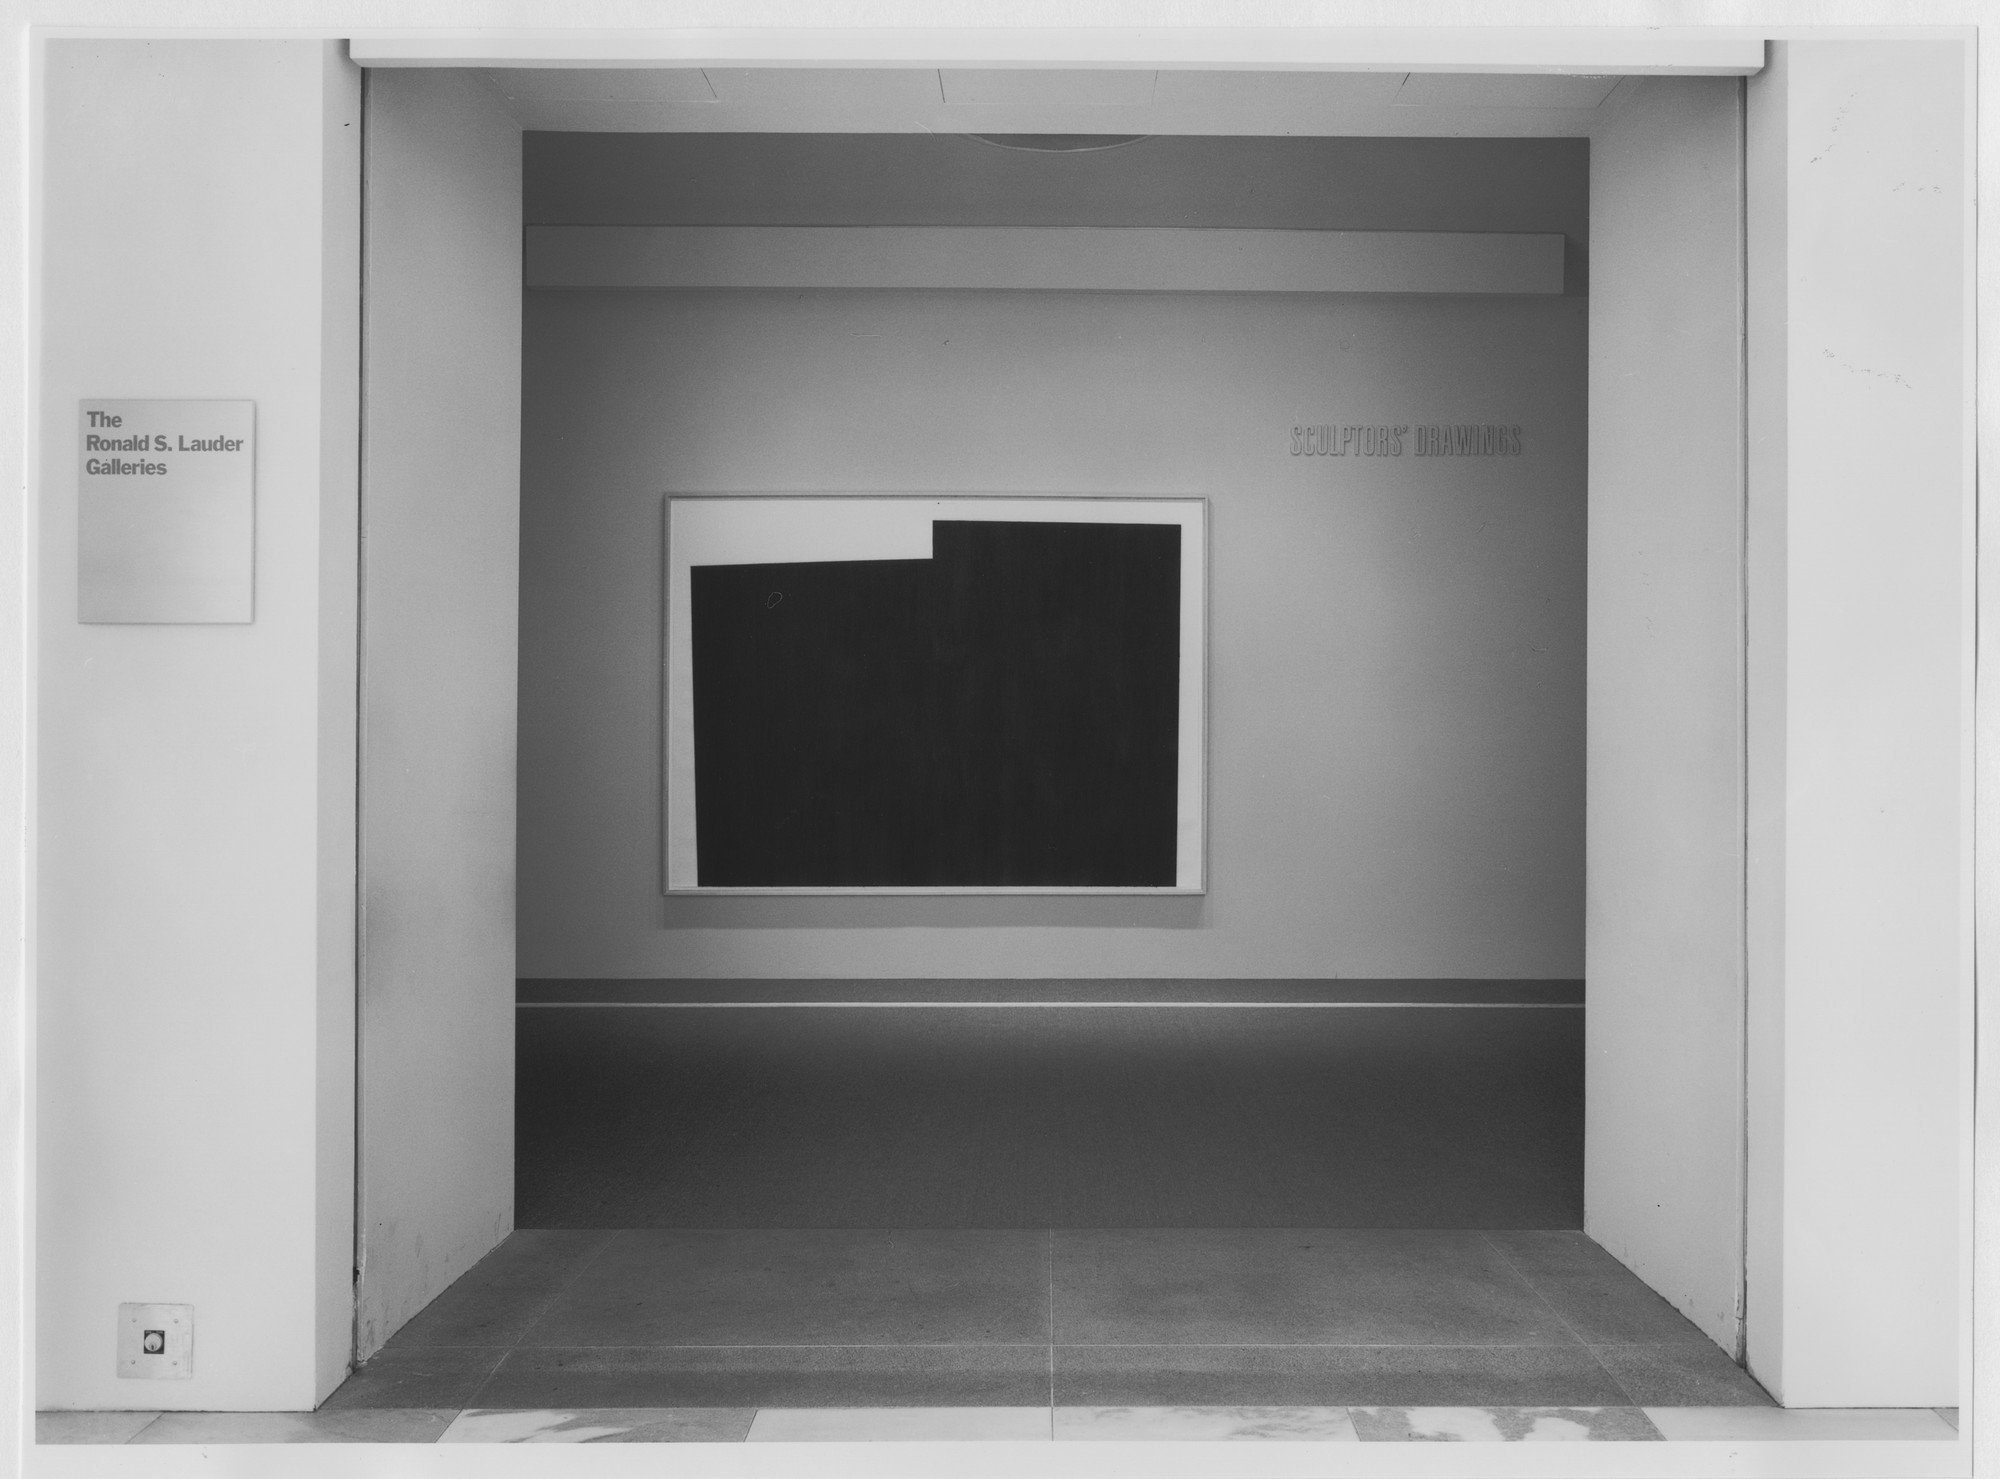 "Installation view of the exhibition, ""Sculptor's Drawings"" April 26, 1986–September 2, 1986. Photographic Archive. The Museum of Modern Art Archives, New York. IN1420.1. Photograph by Mali Olatunji."